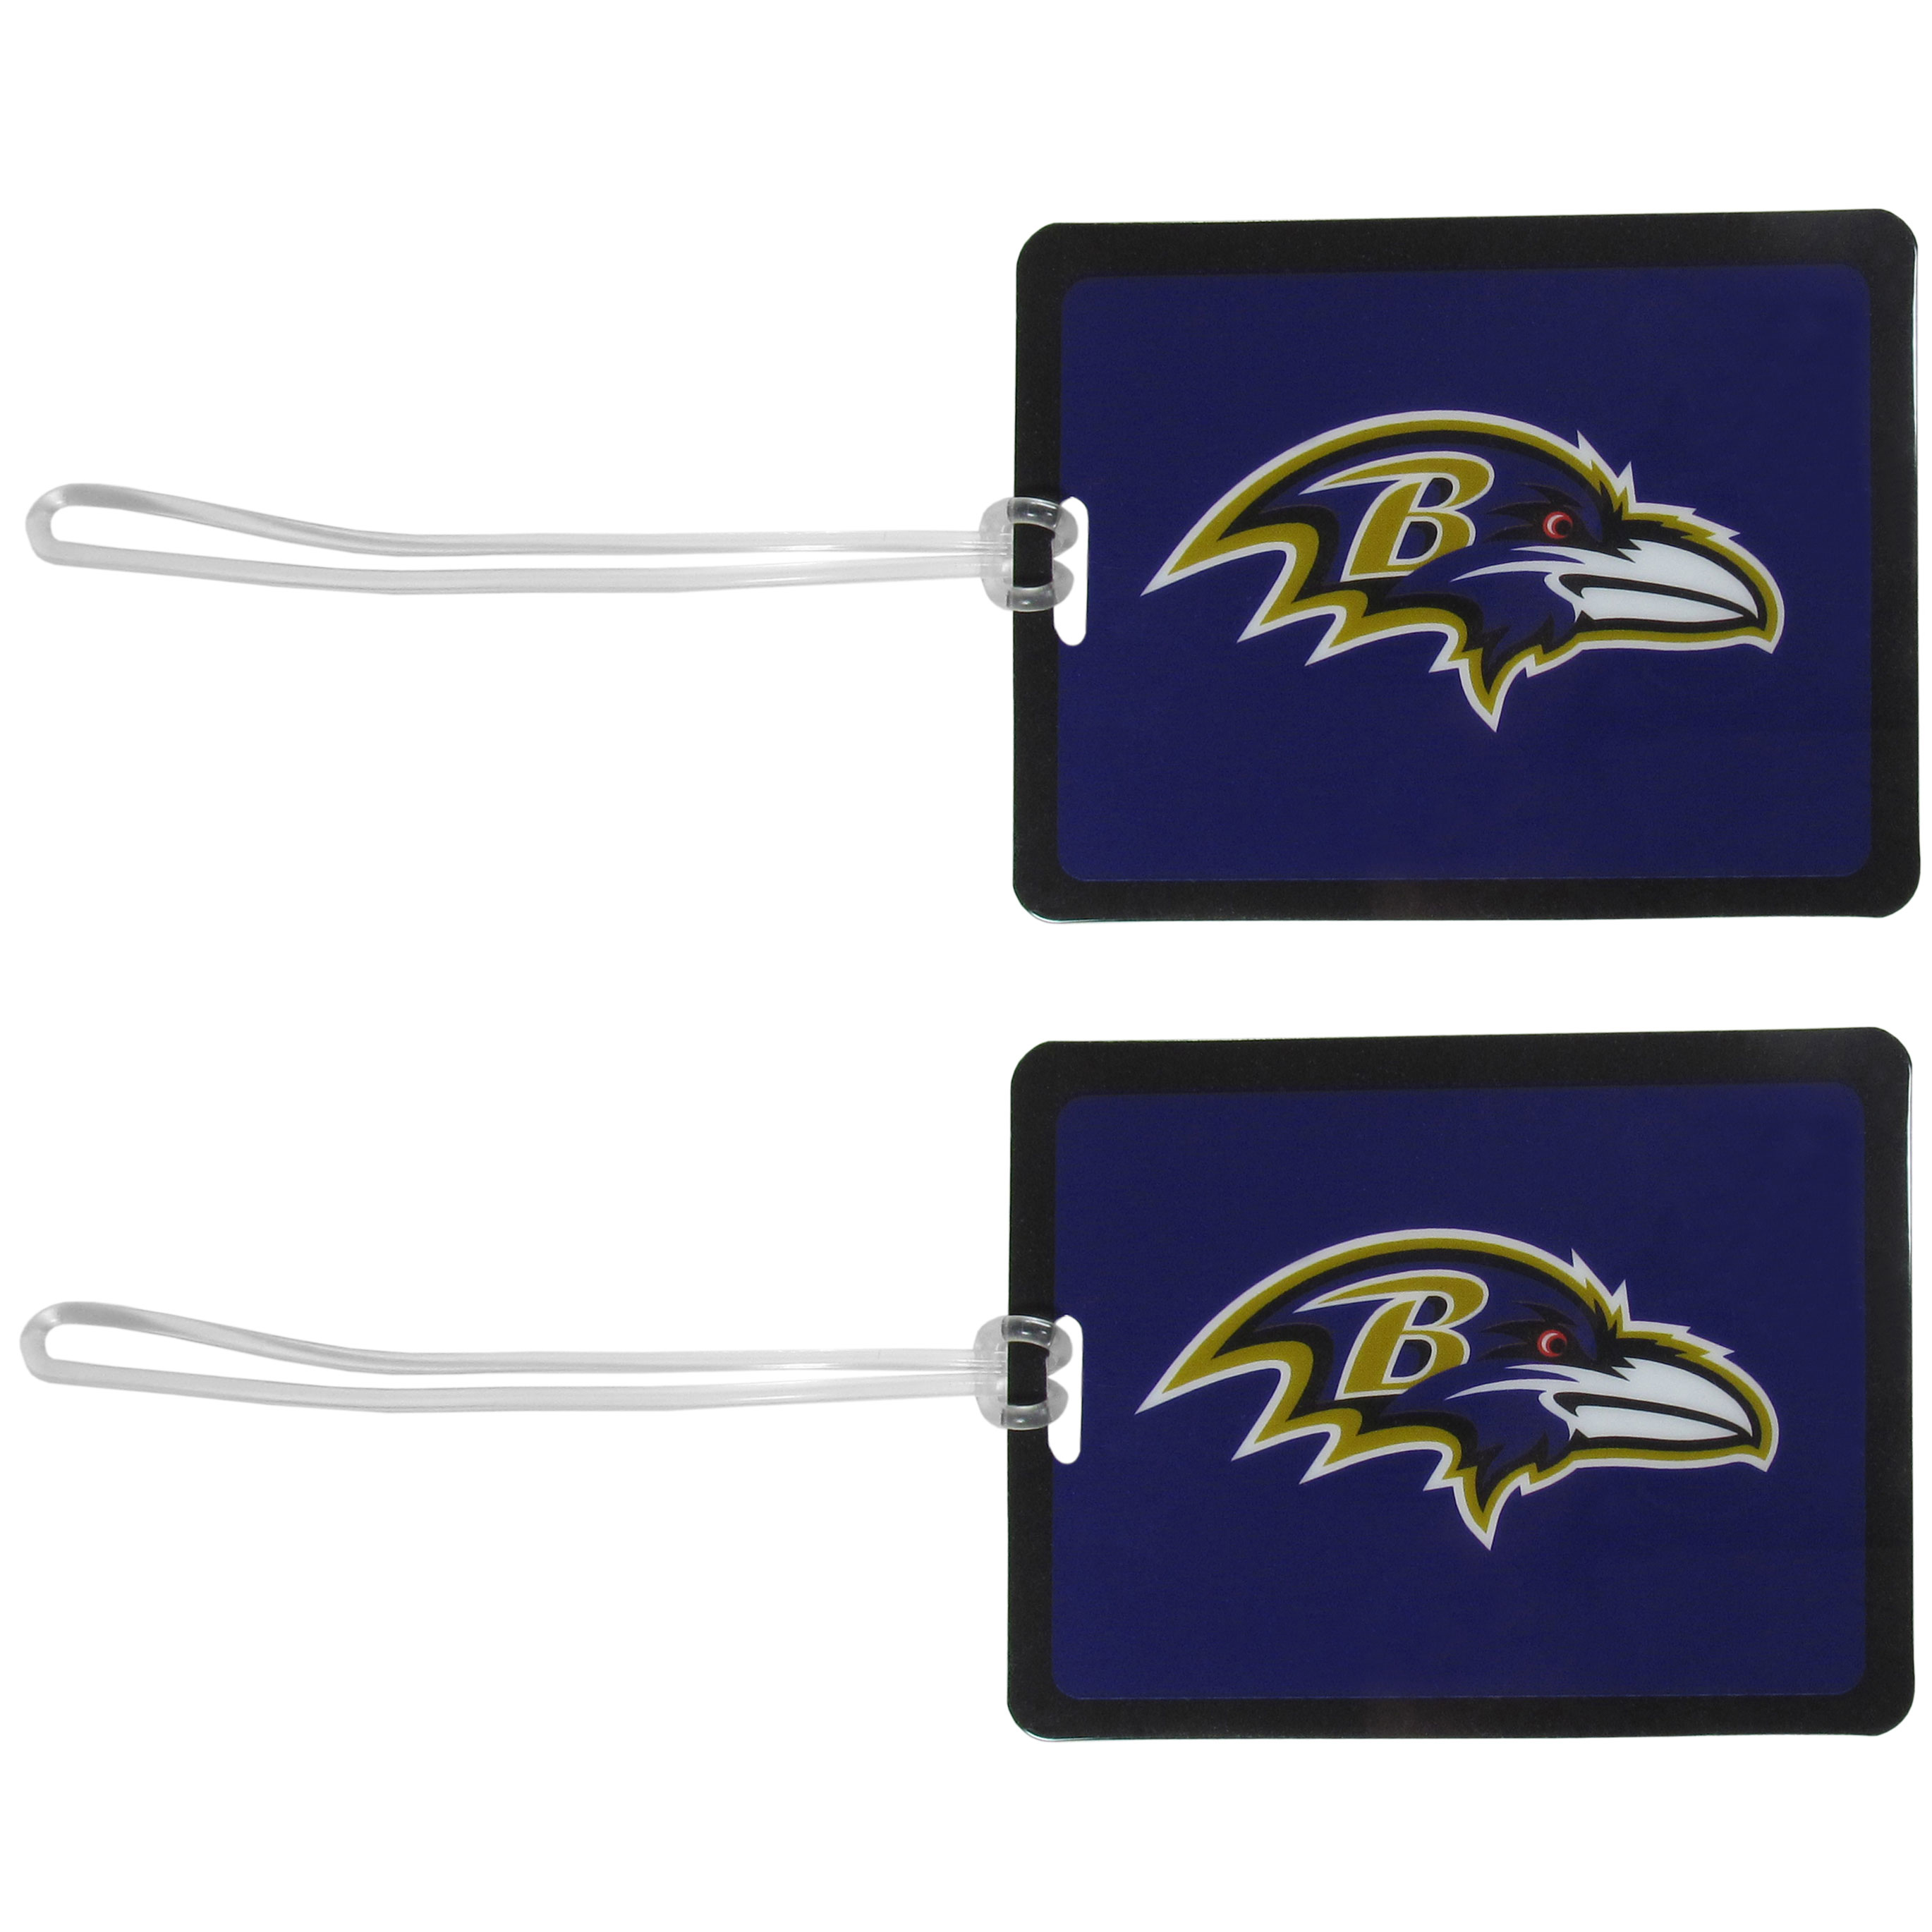 Baltimore Ravens Vinyl Luggage Tag, 2pk - Tired of trying to spot your suitcase or bag in a sea of luggage? Try our large and colorful Baltimore Ravens luggage tags. The tag is 4x3 inches and has a 5 inch cord to attach it easily to your bags, backpacks or luggage. The front of the tag features the team logo in a bright, team colored background and you can write you name, address and phone number on the back of the tag.